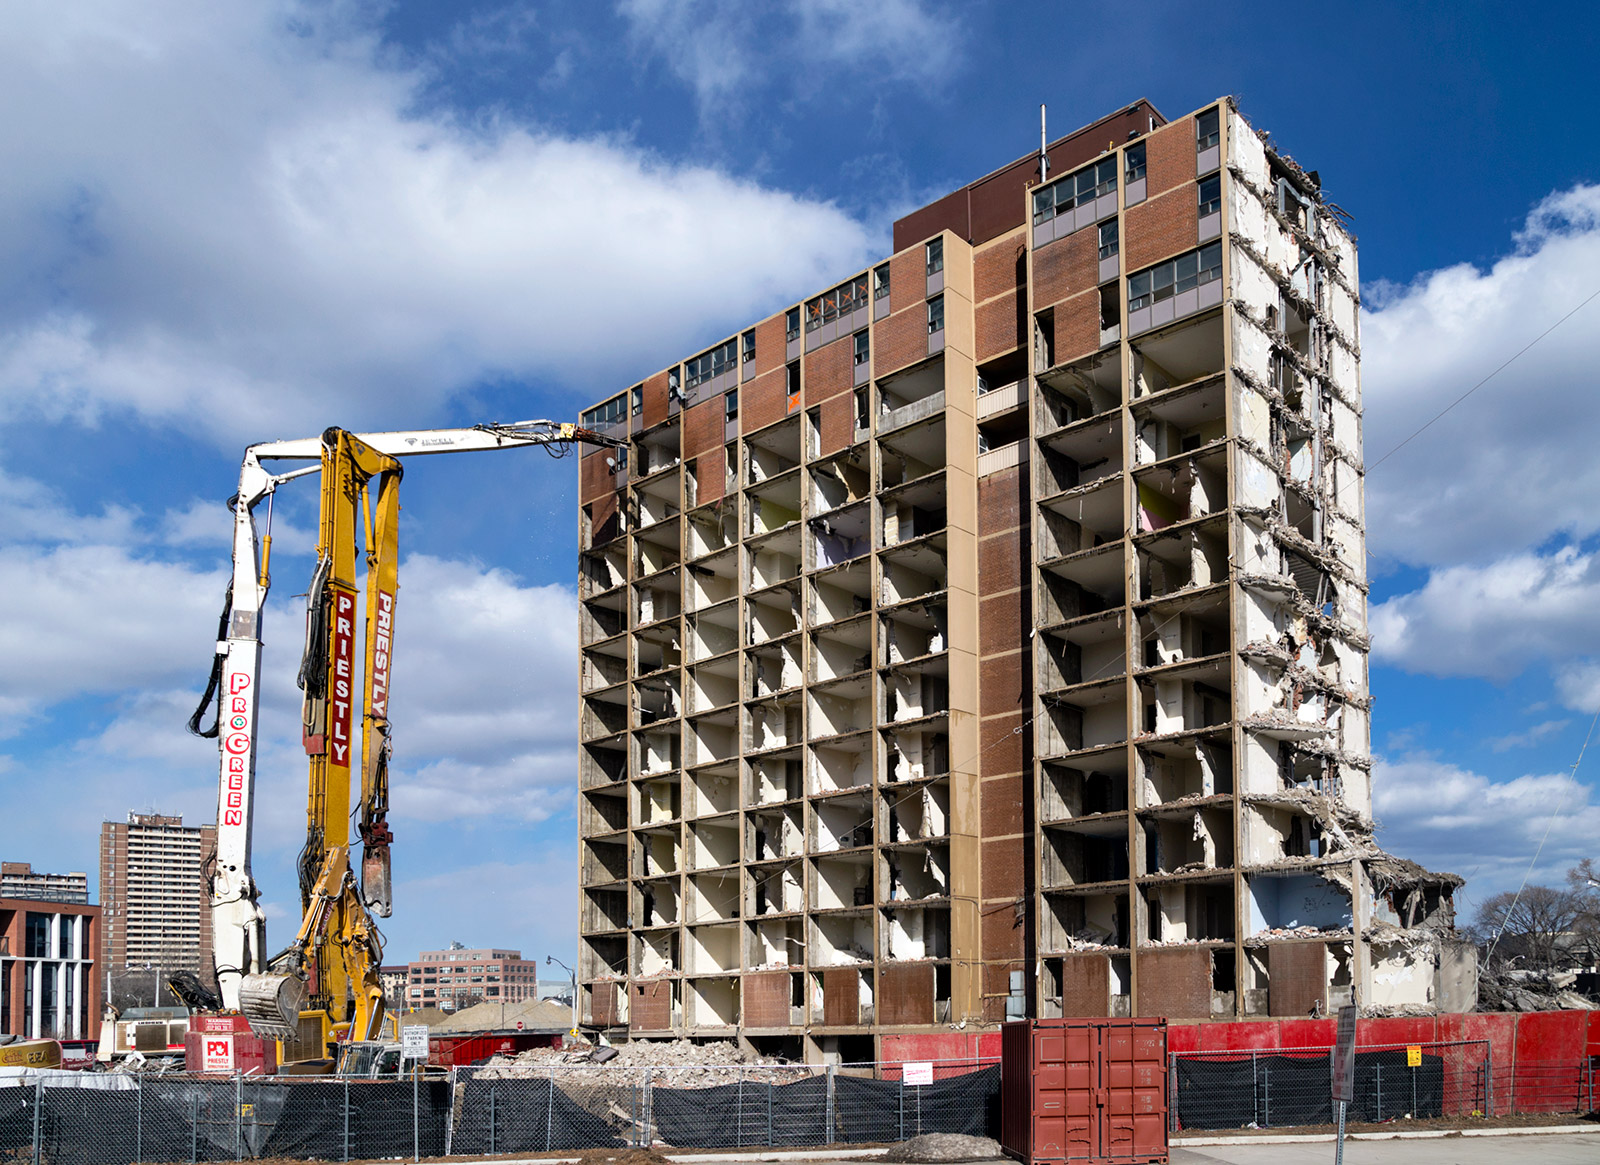 20150318. Demolition of the last Dickinson-designed modernist to